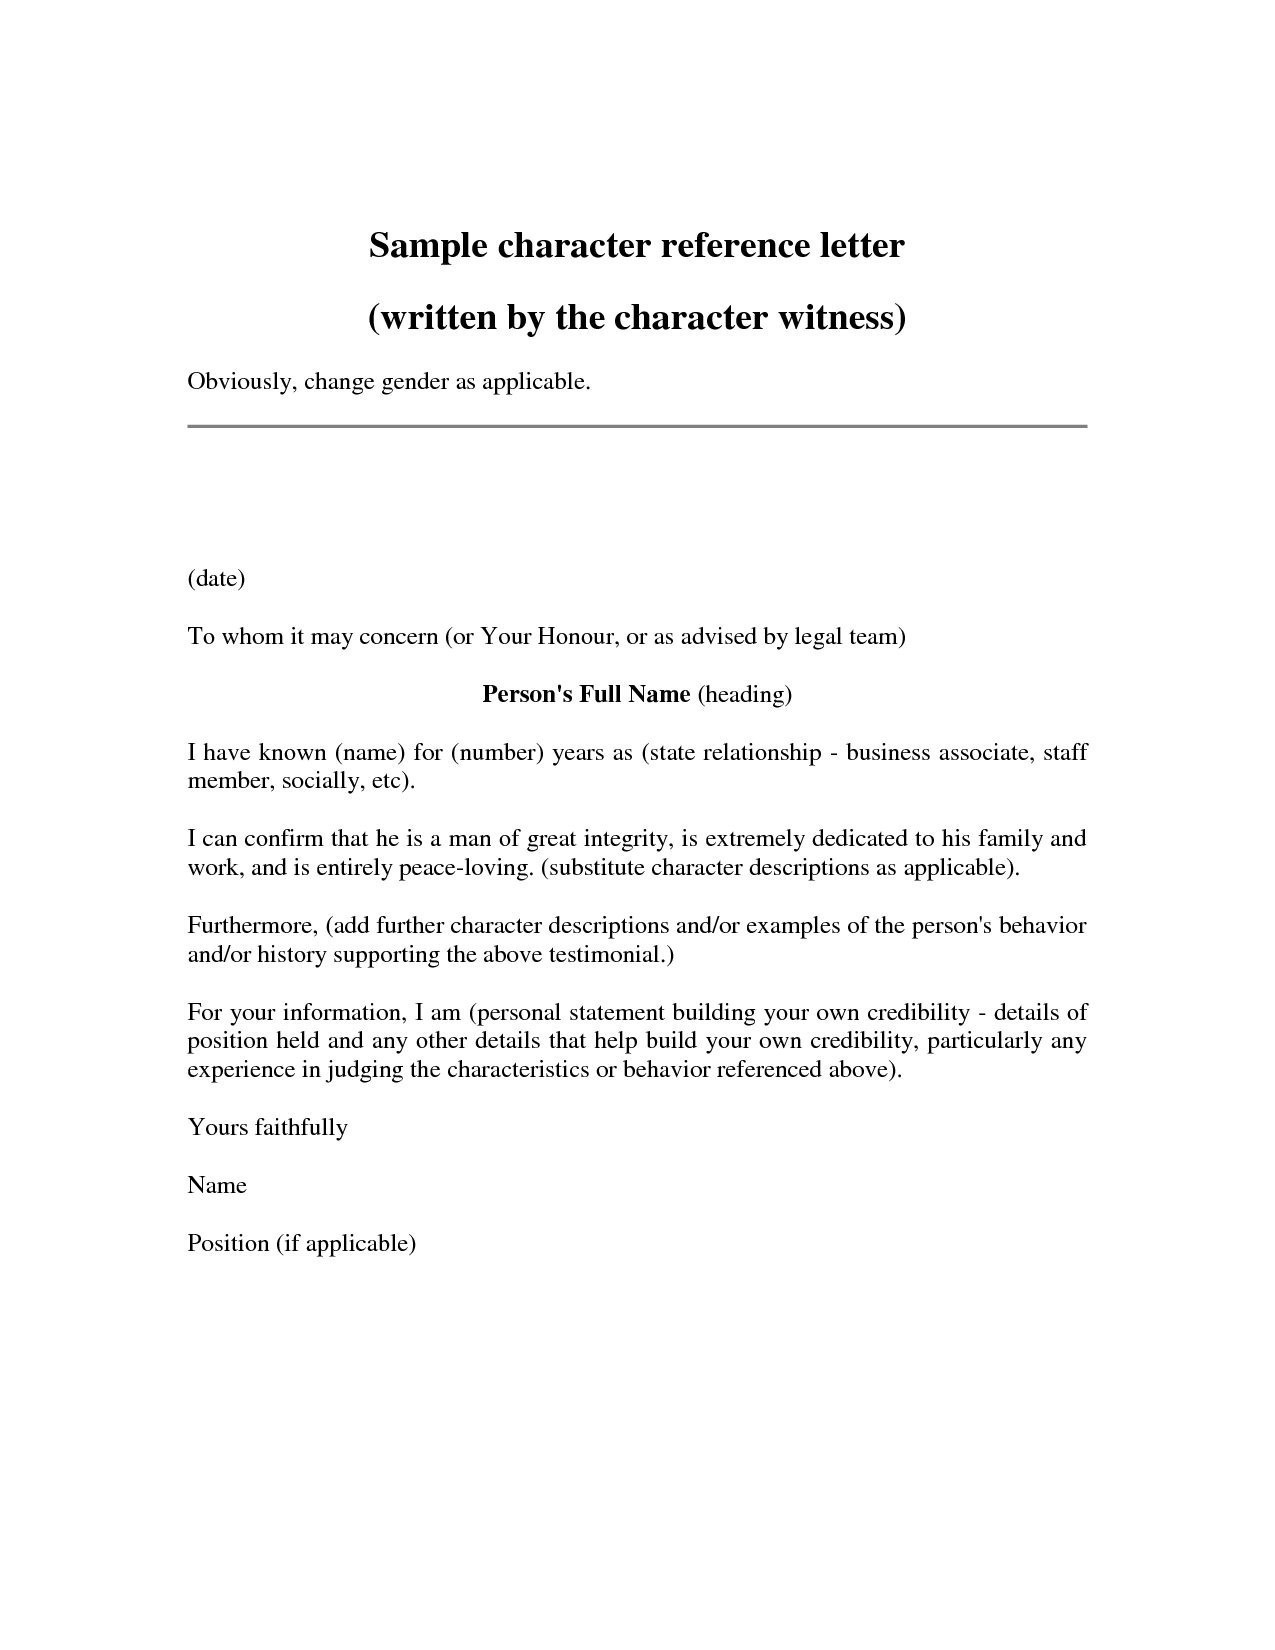 Court Reference Letter Template - Character Reference Letter Template Doc New Writing Letter Reference